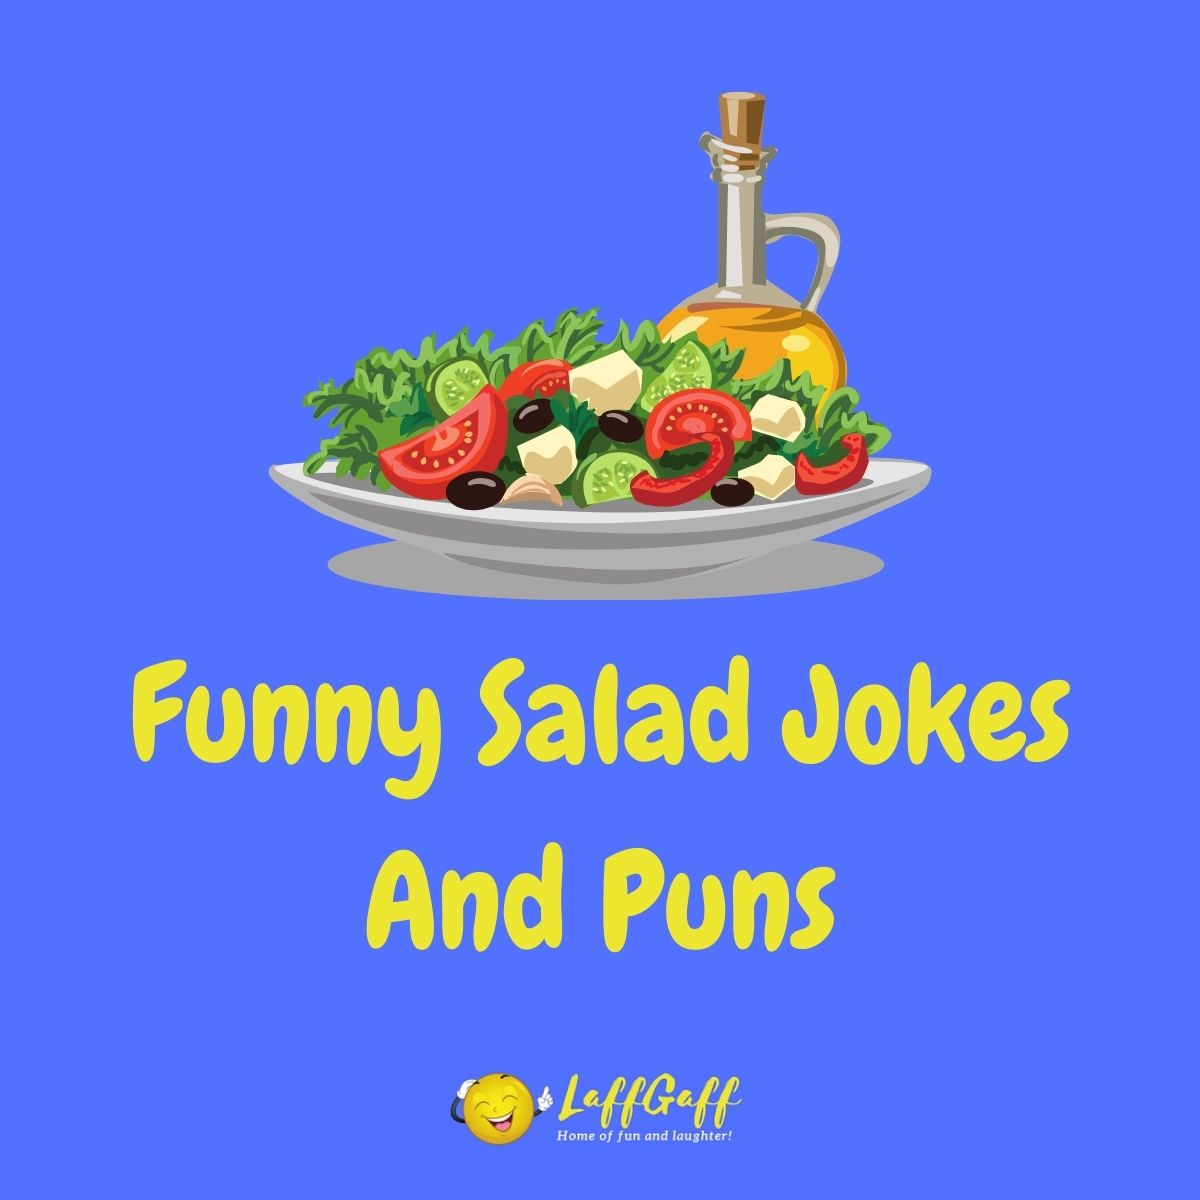 Featured image for a page of funny salad jokes and puns.